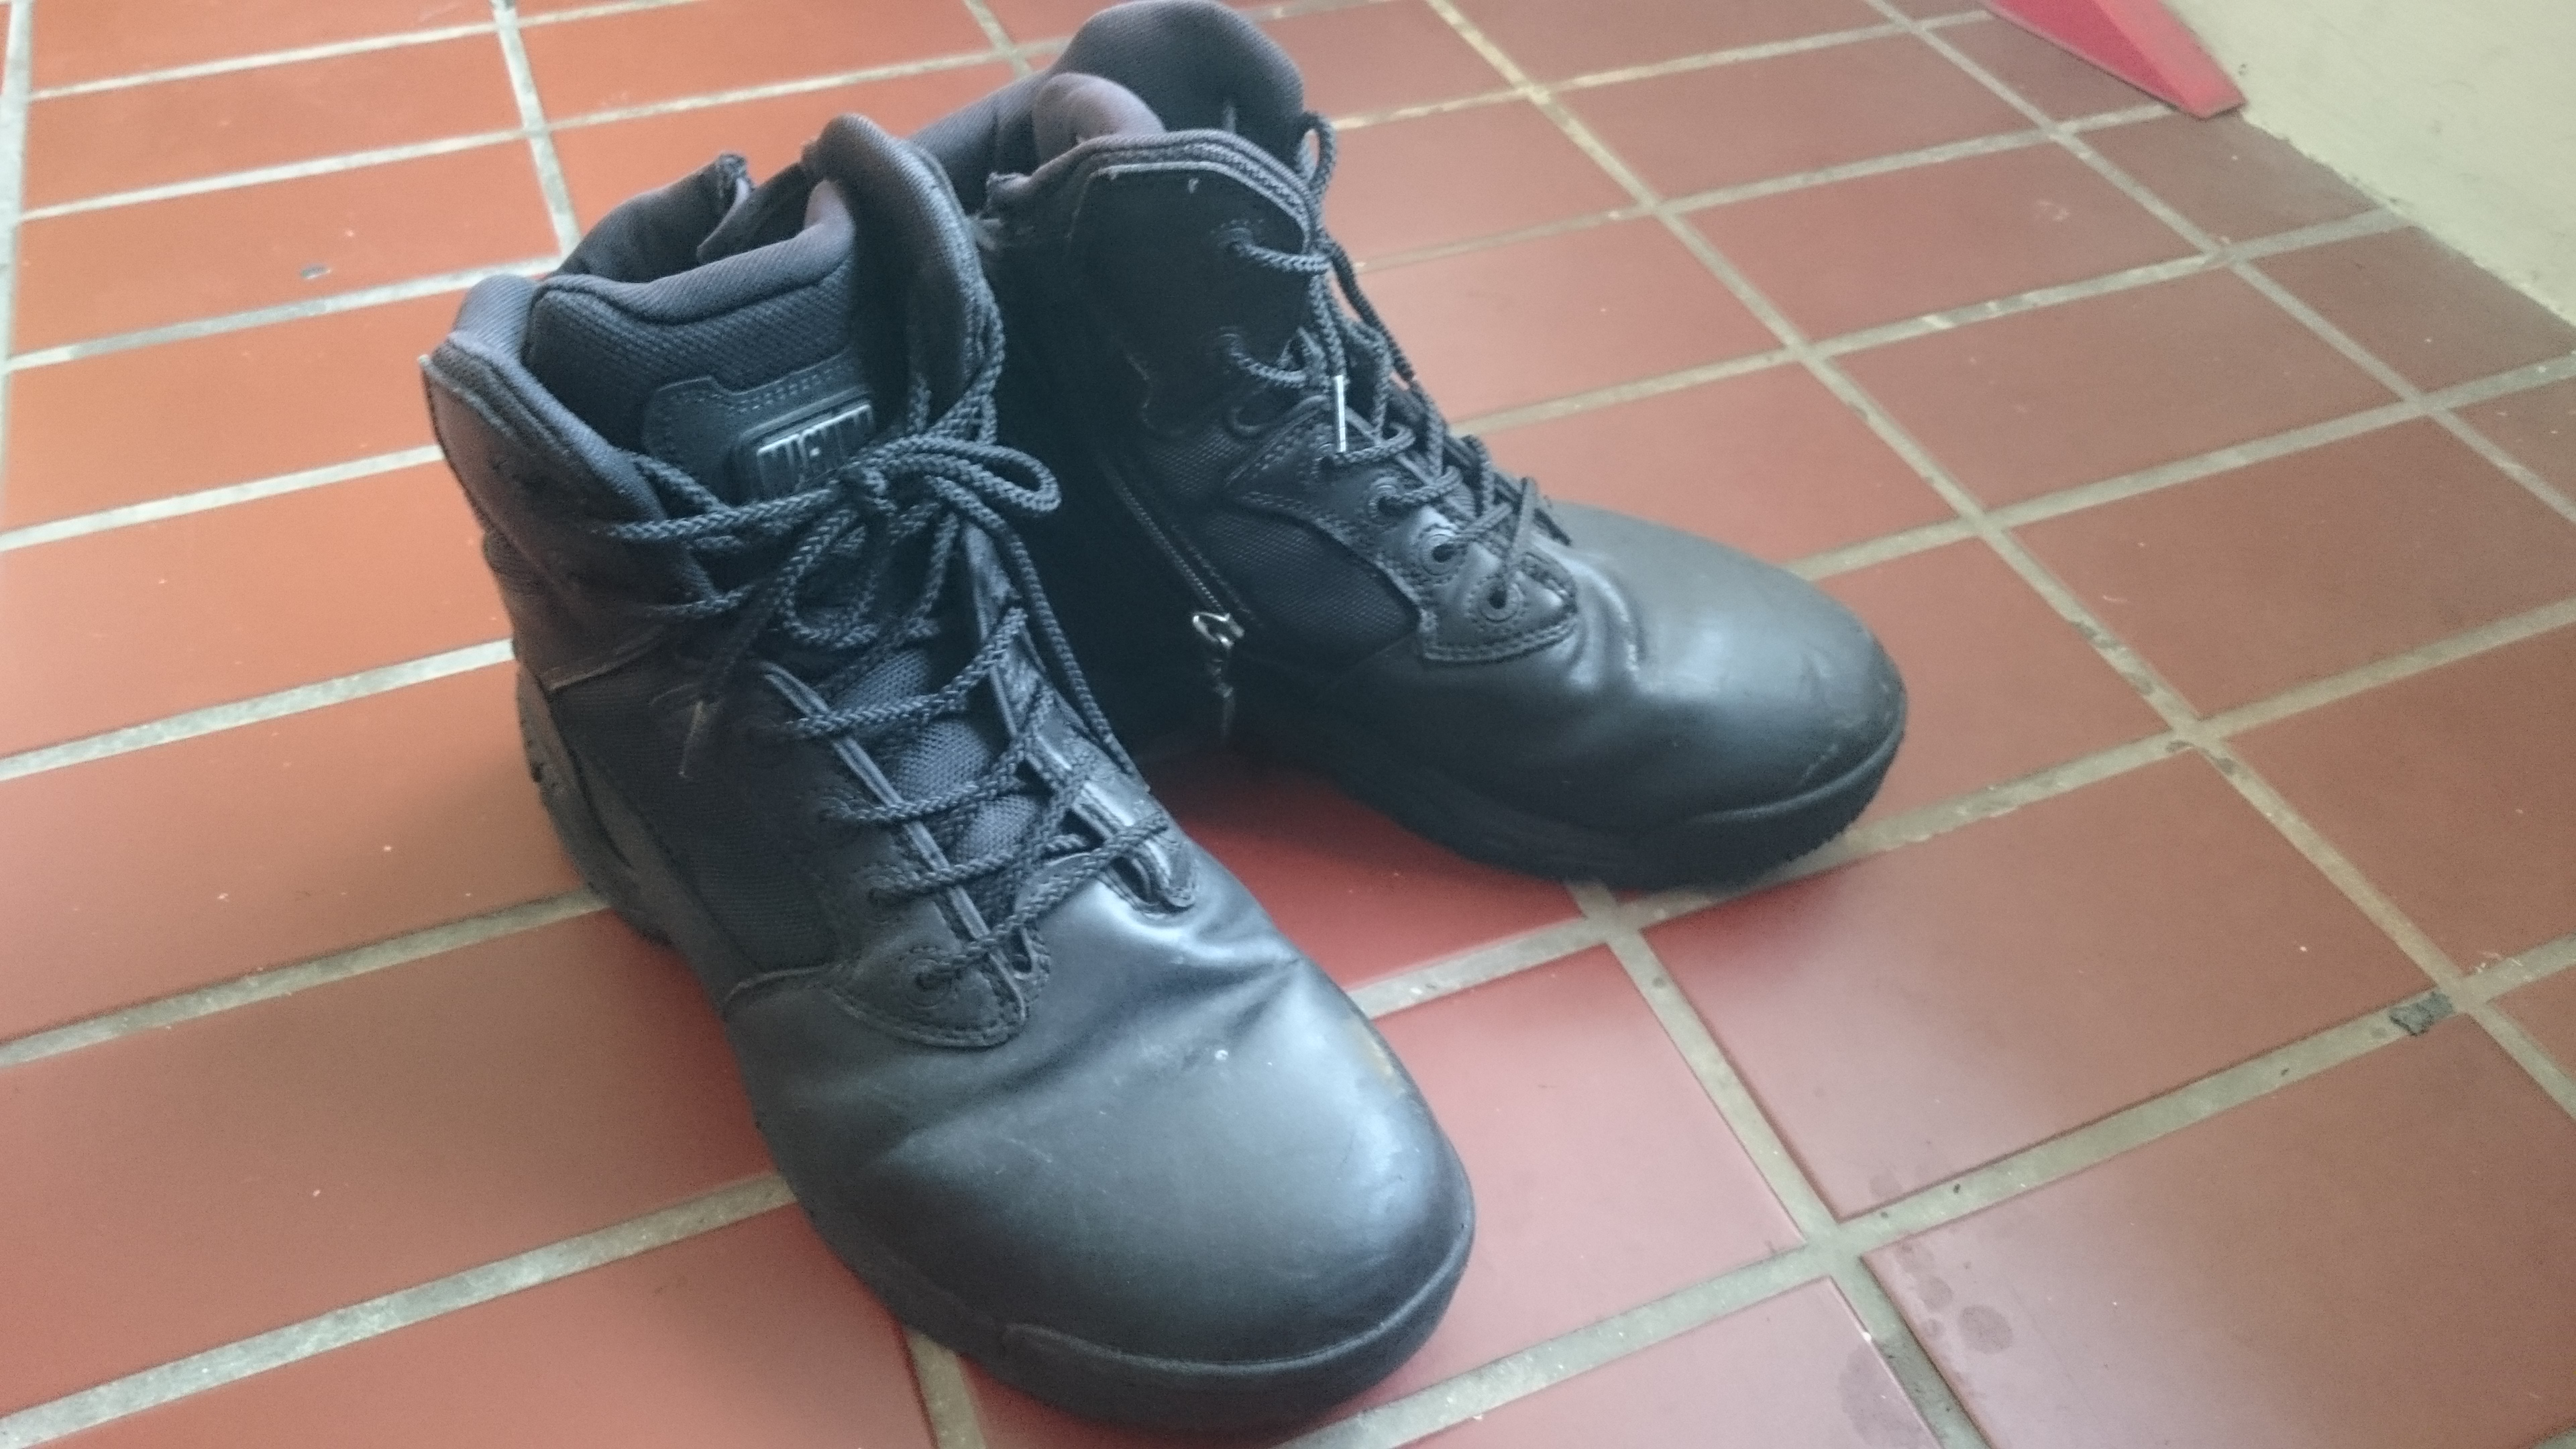 Magnum boots double up as good motorcycling boots